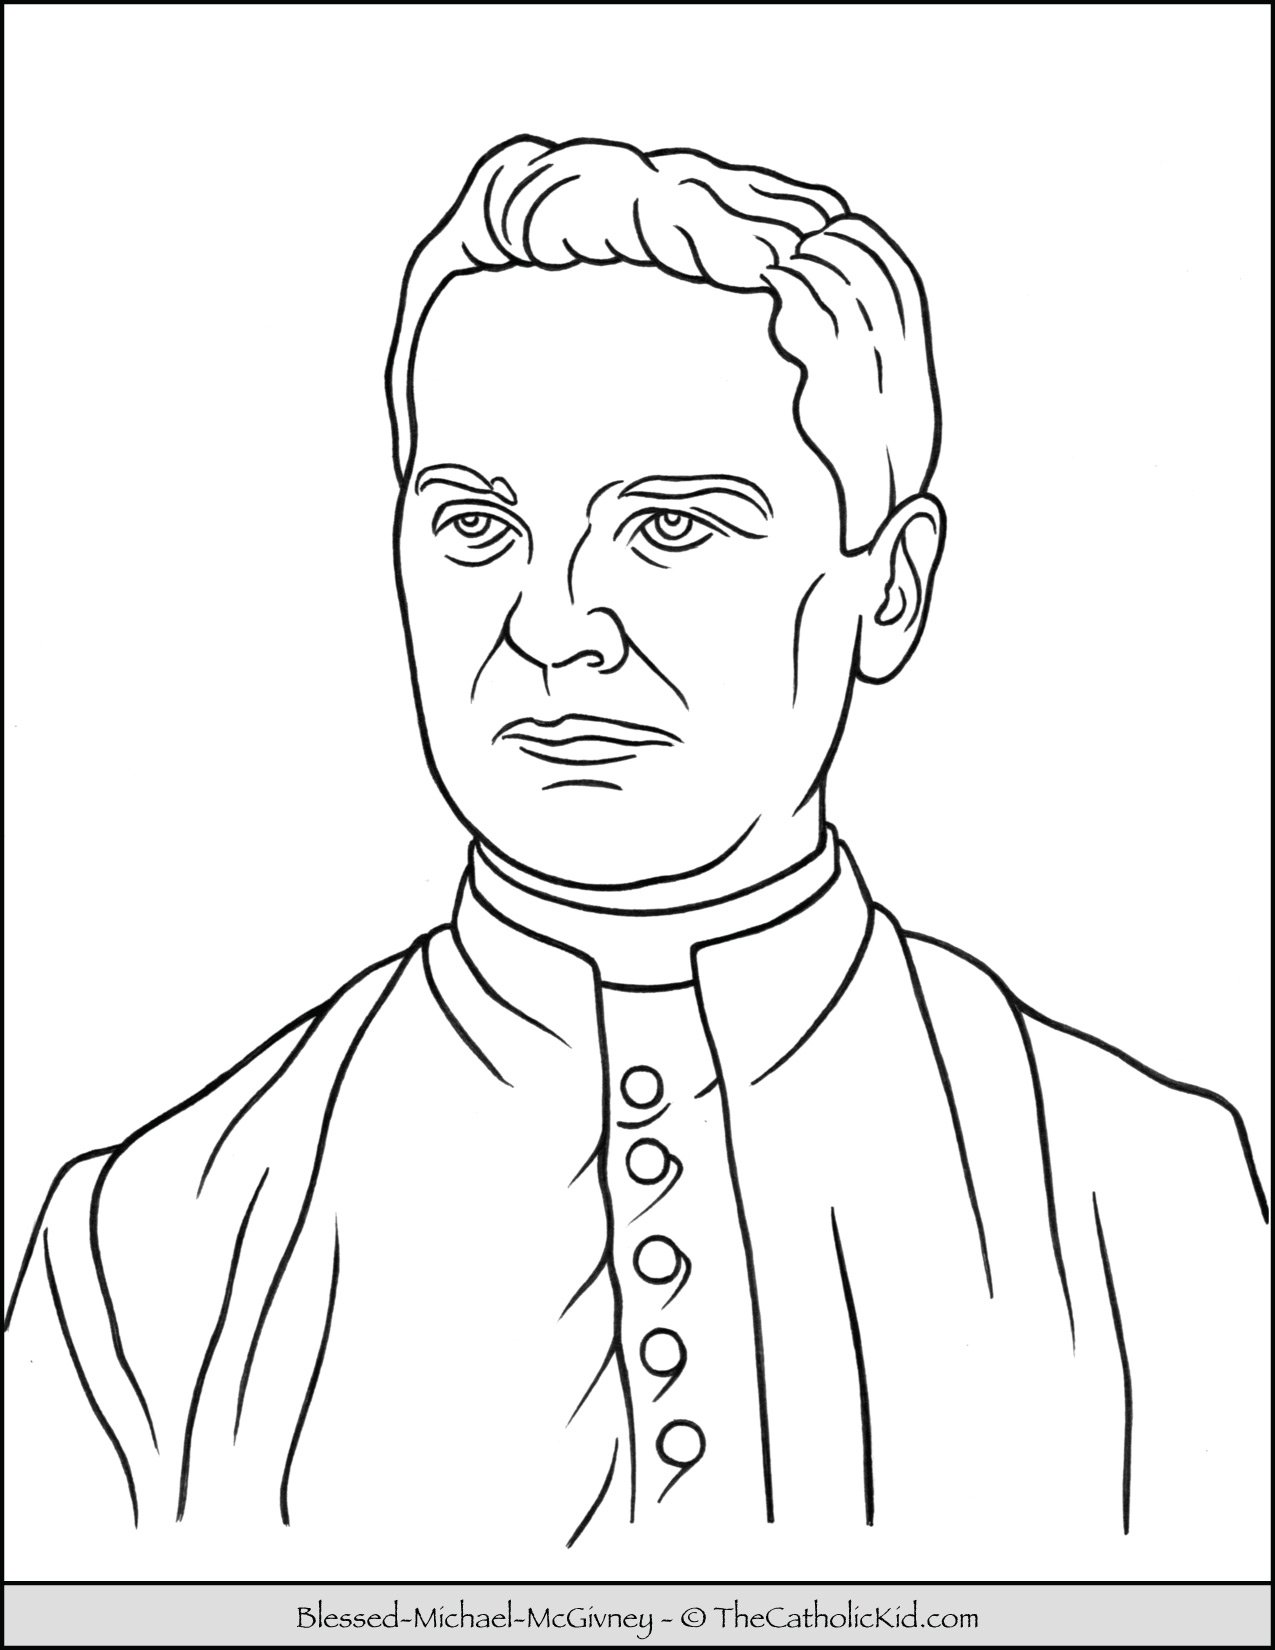 Blessed Michael McGivney Coloring Page